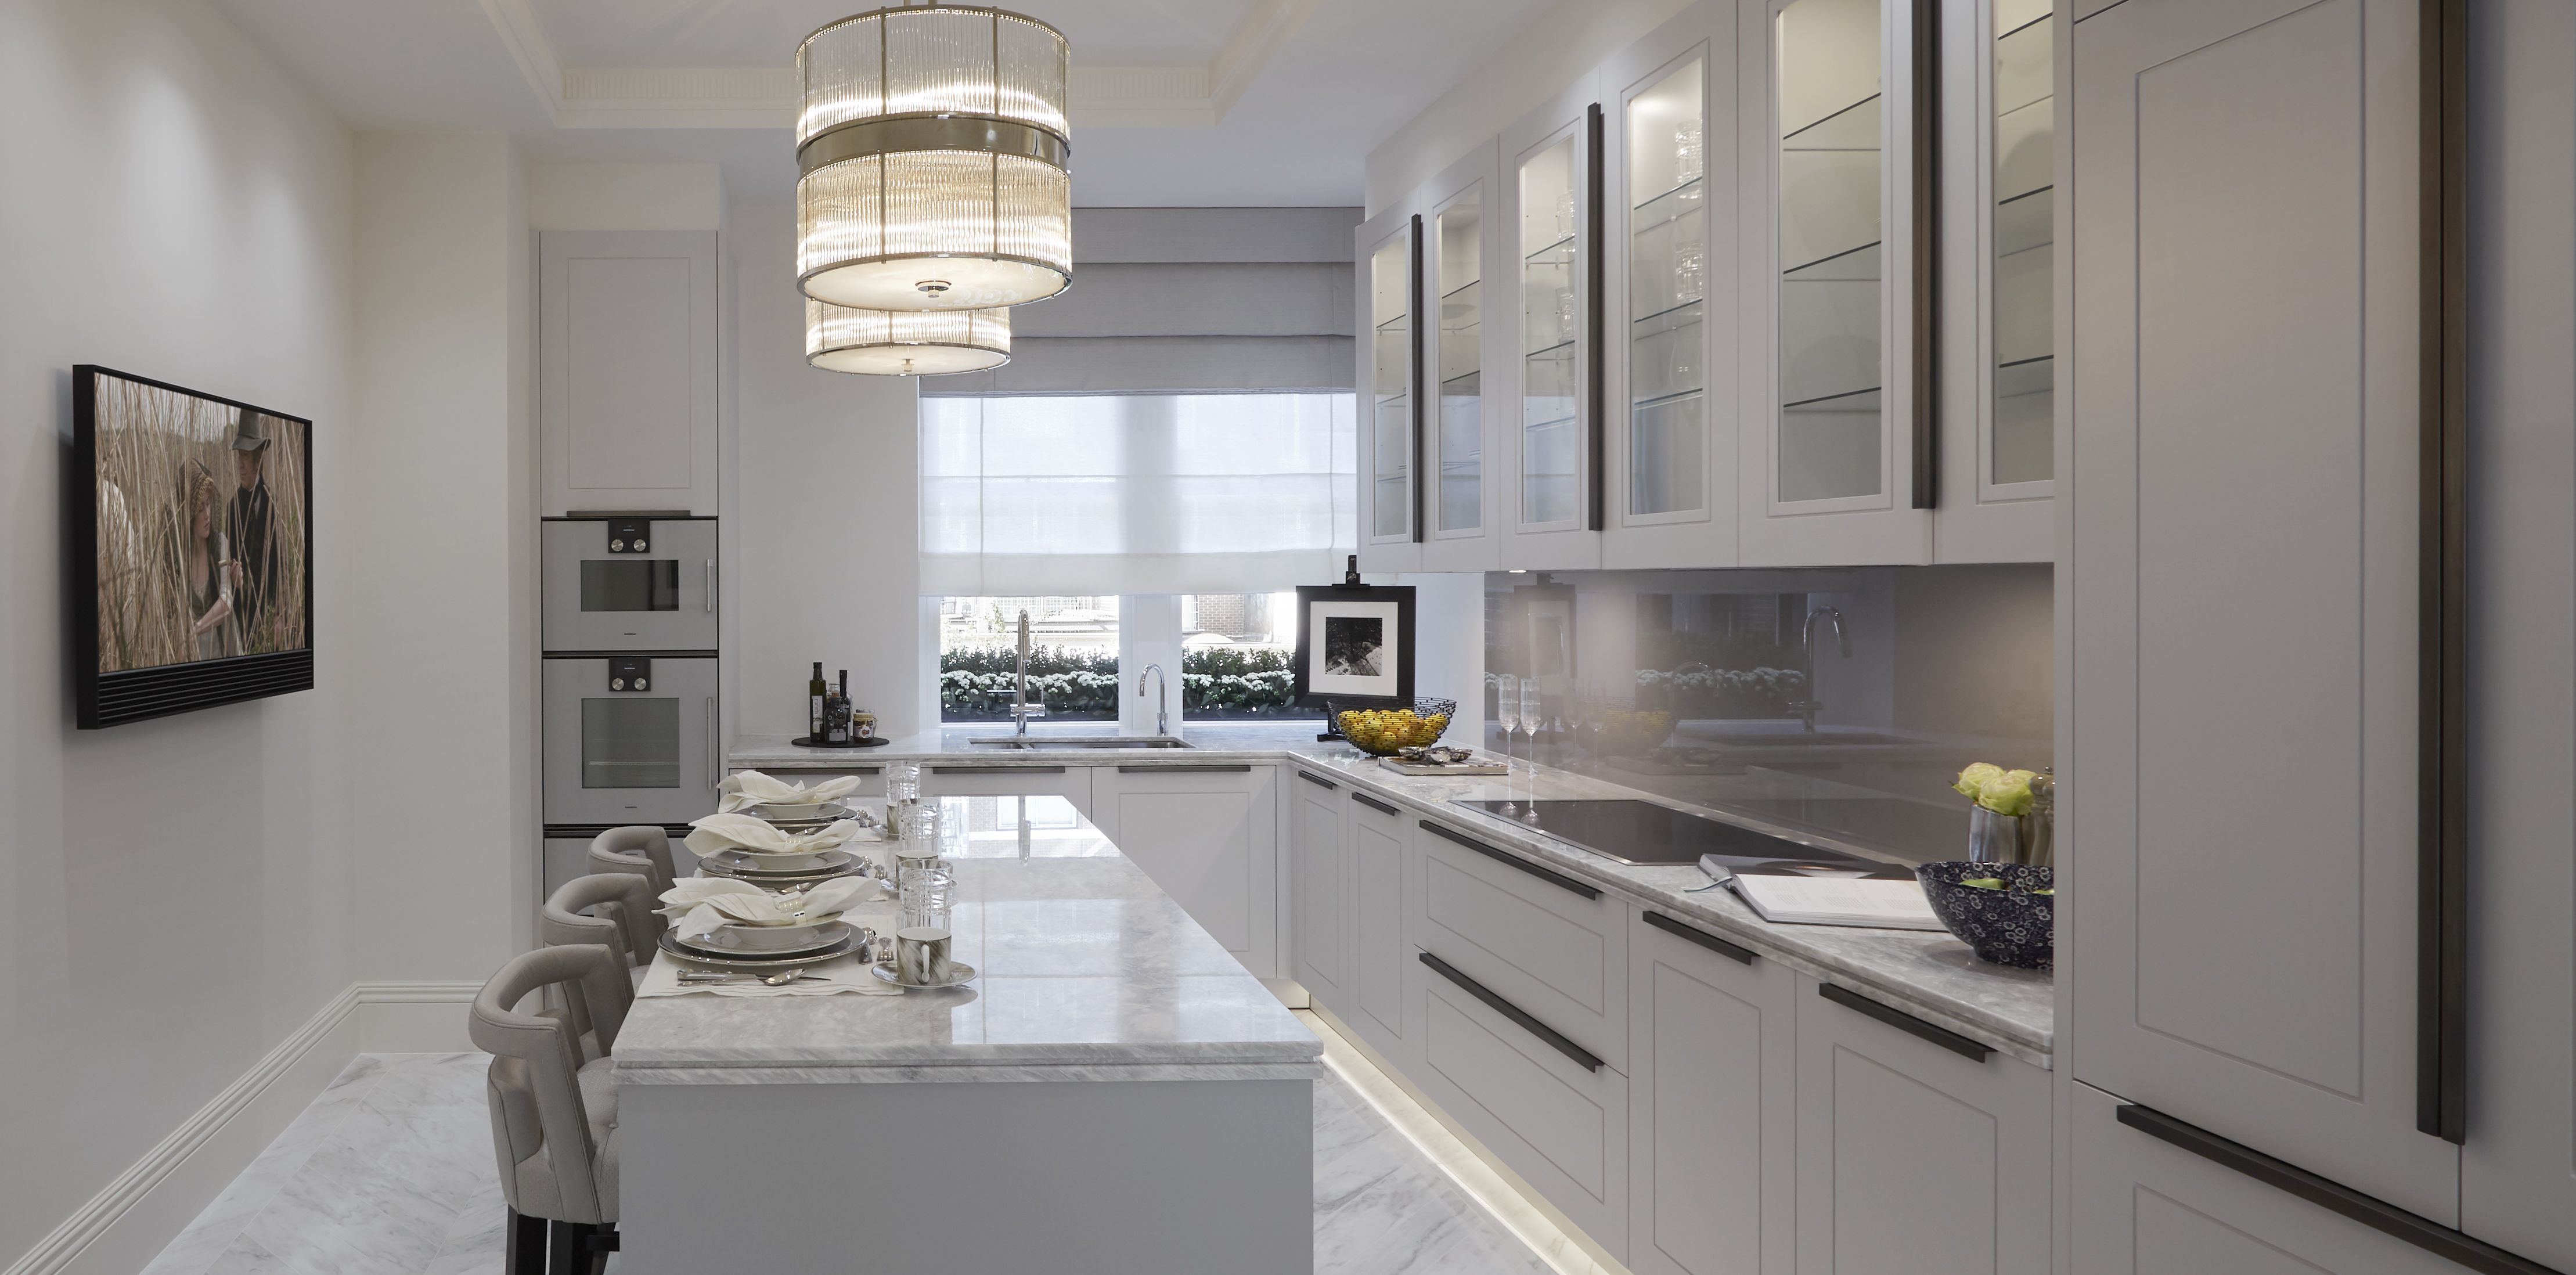 top kitchen trends 2019 what kitchen design styles are in out rh elledecor com modern kitchen ideas 2019 kitchen backsplash ideas 2019